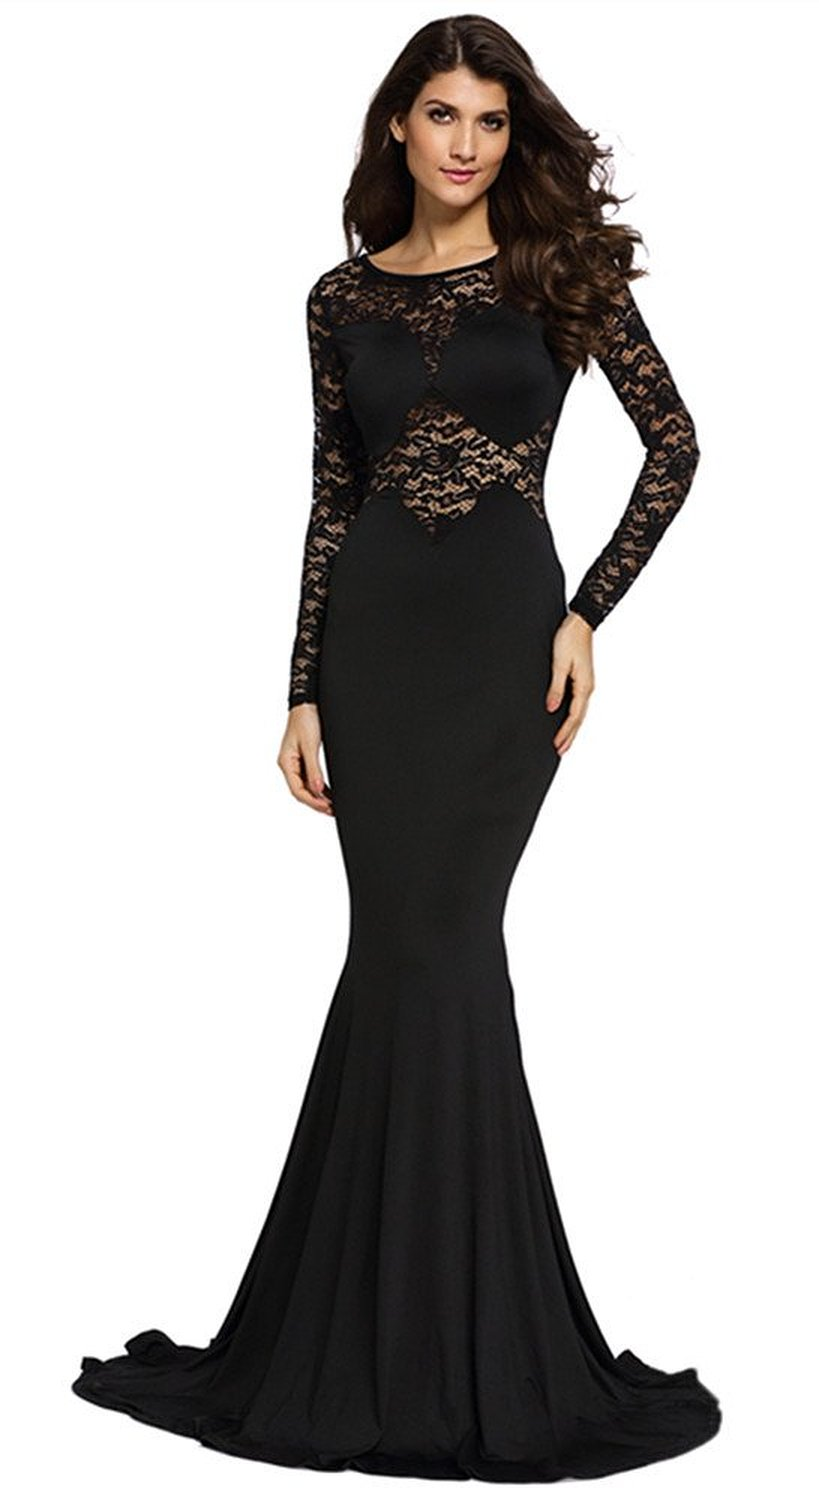 Amazon.com: Cfanny Women's Lace Sleeves Mermaid Prom Evening Dress: Clothing